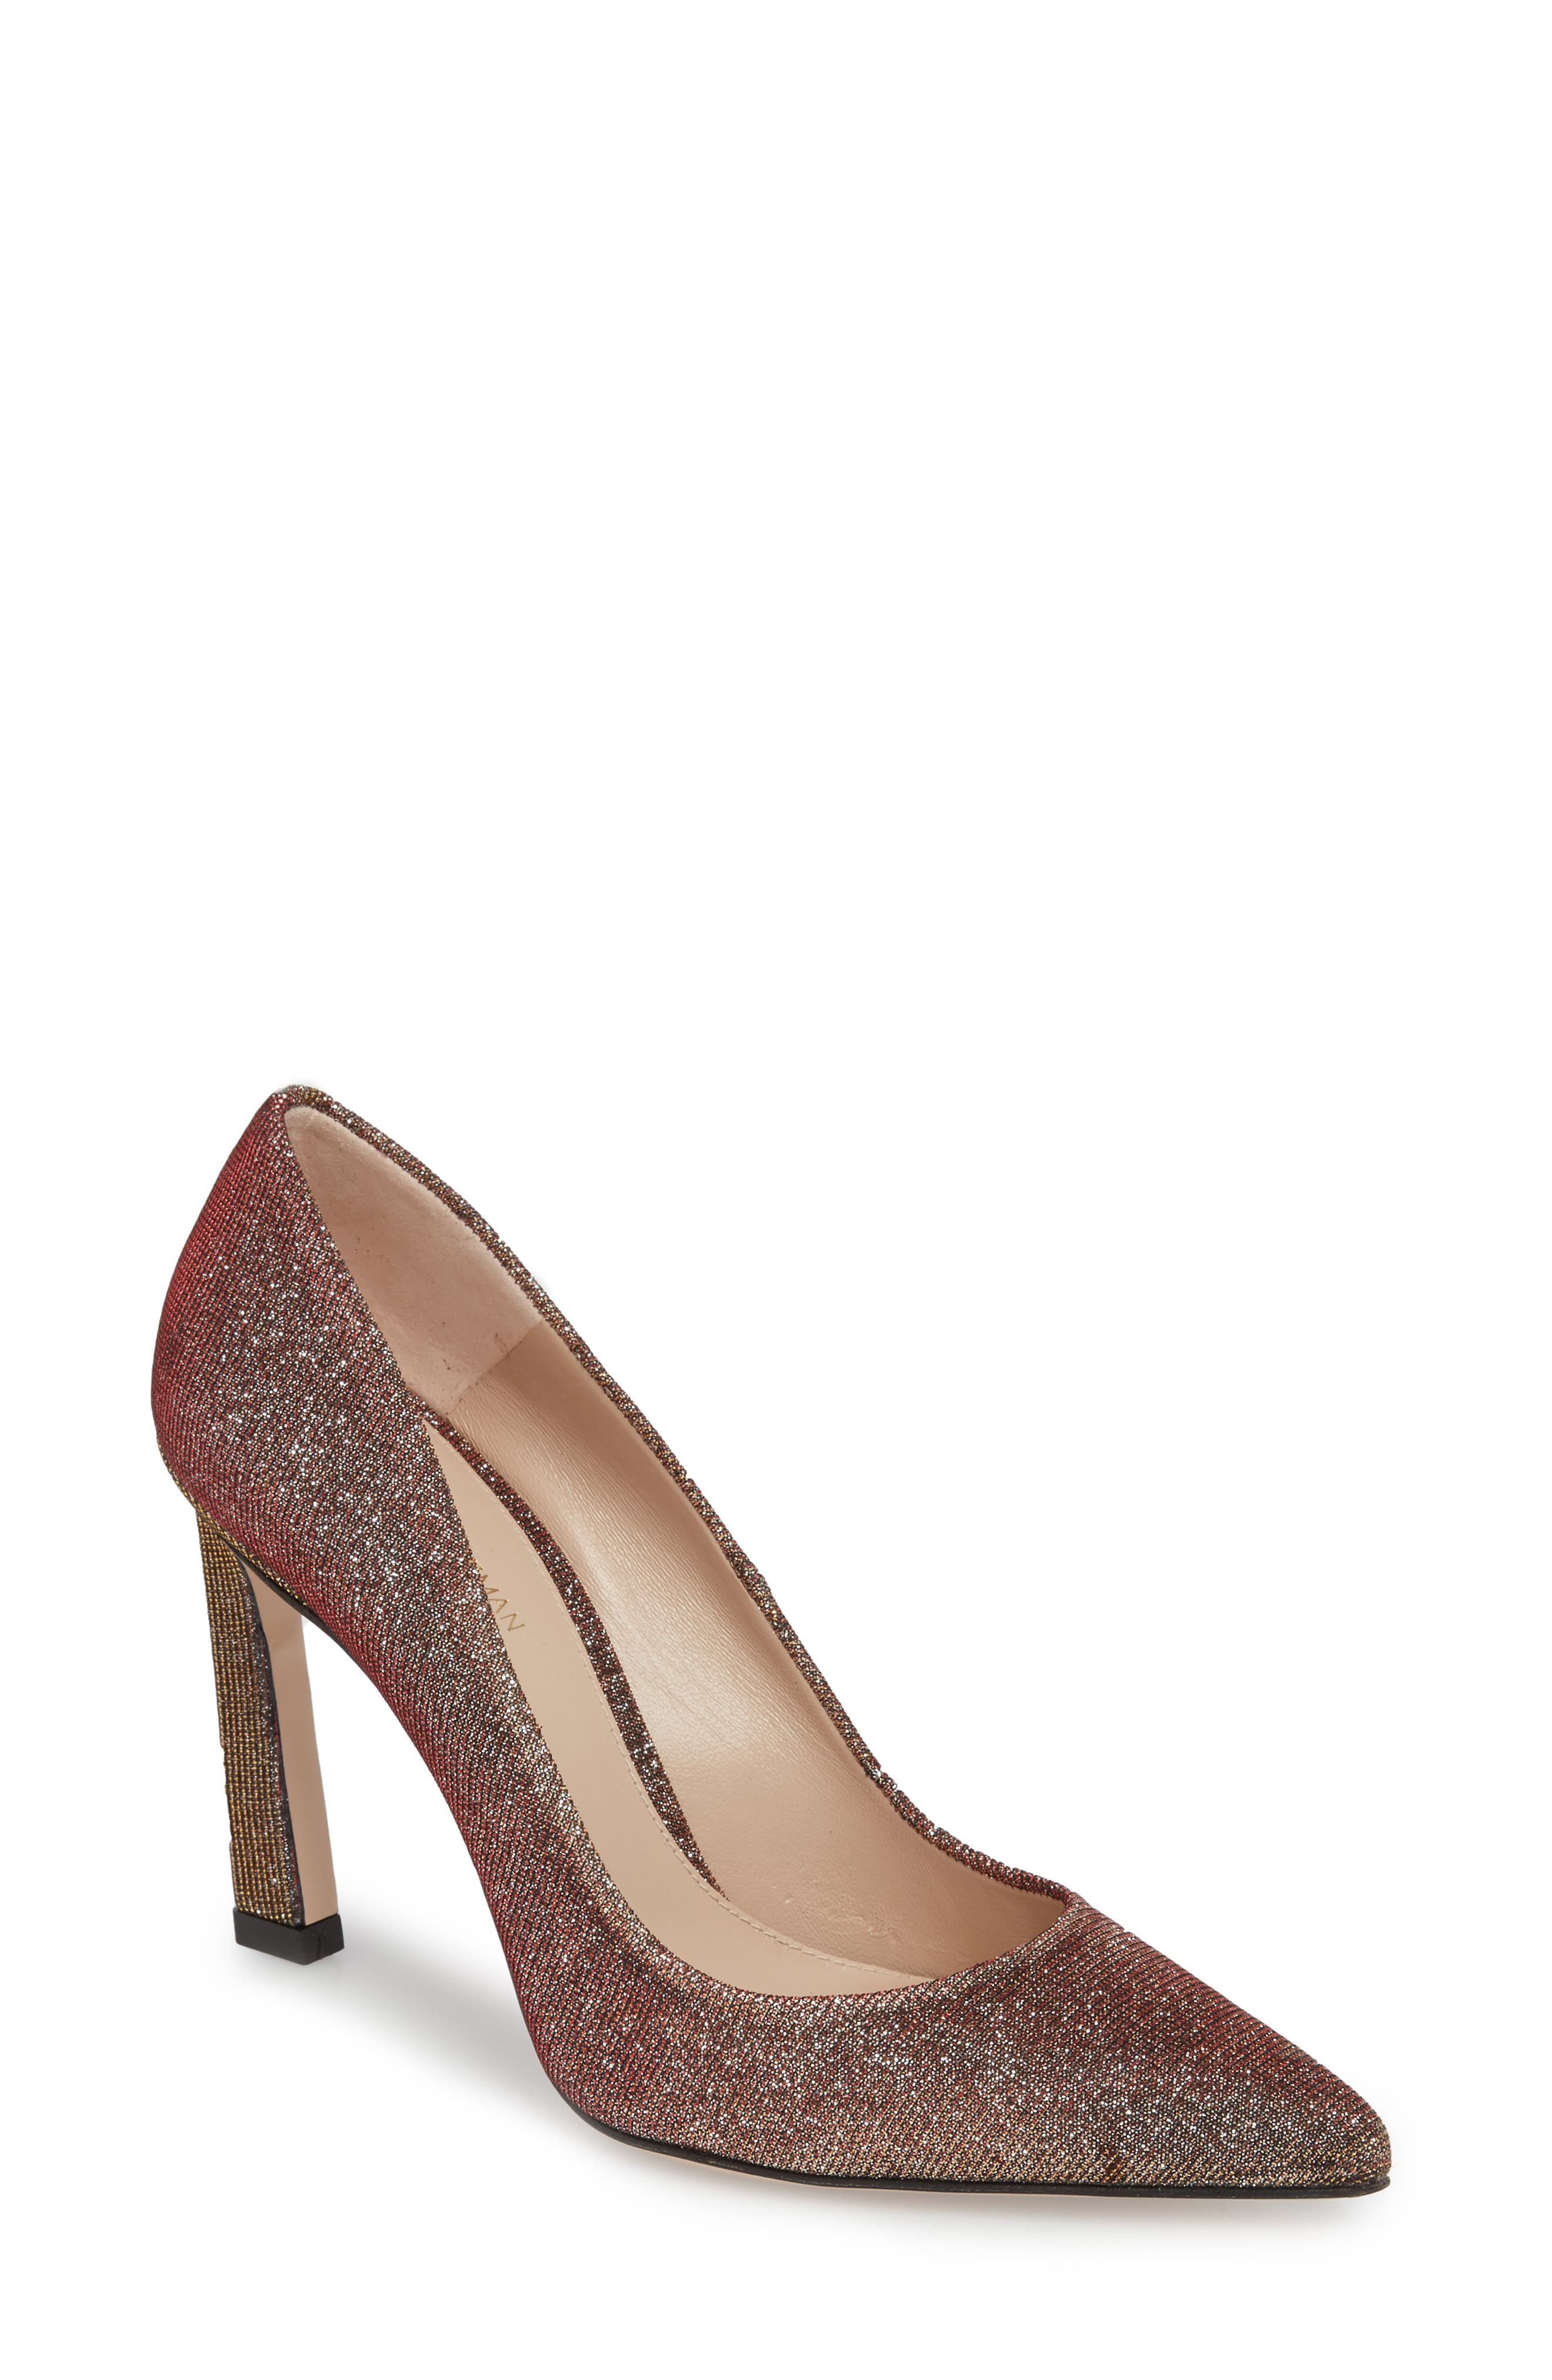 Chicster Pointy Toe Pump,                             Main thumbnail 1, color,                             Bronze Nighttime